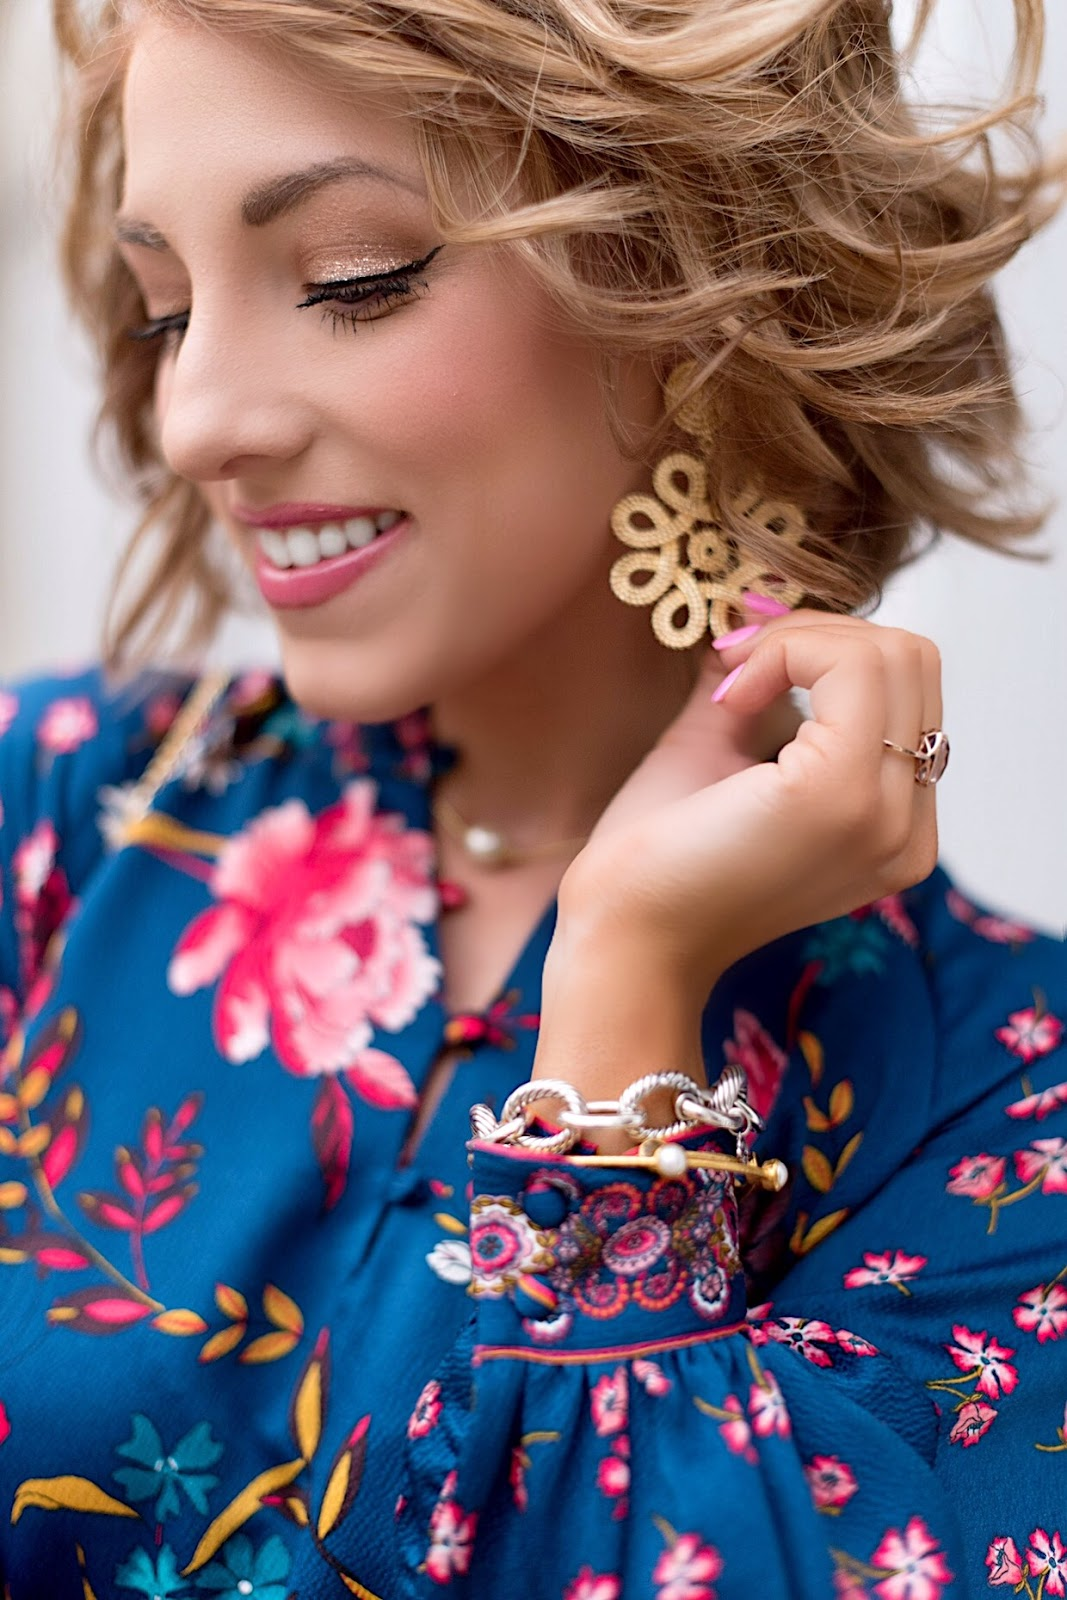 Lisi Lerch Statement Earrings - Click through to see more on Something Delightful Blog